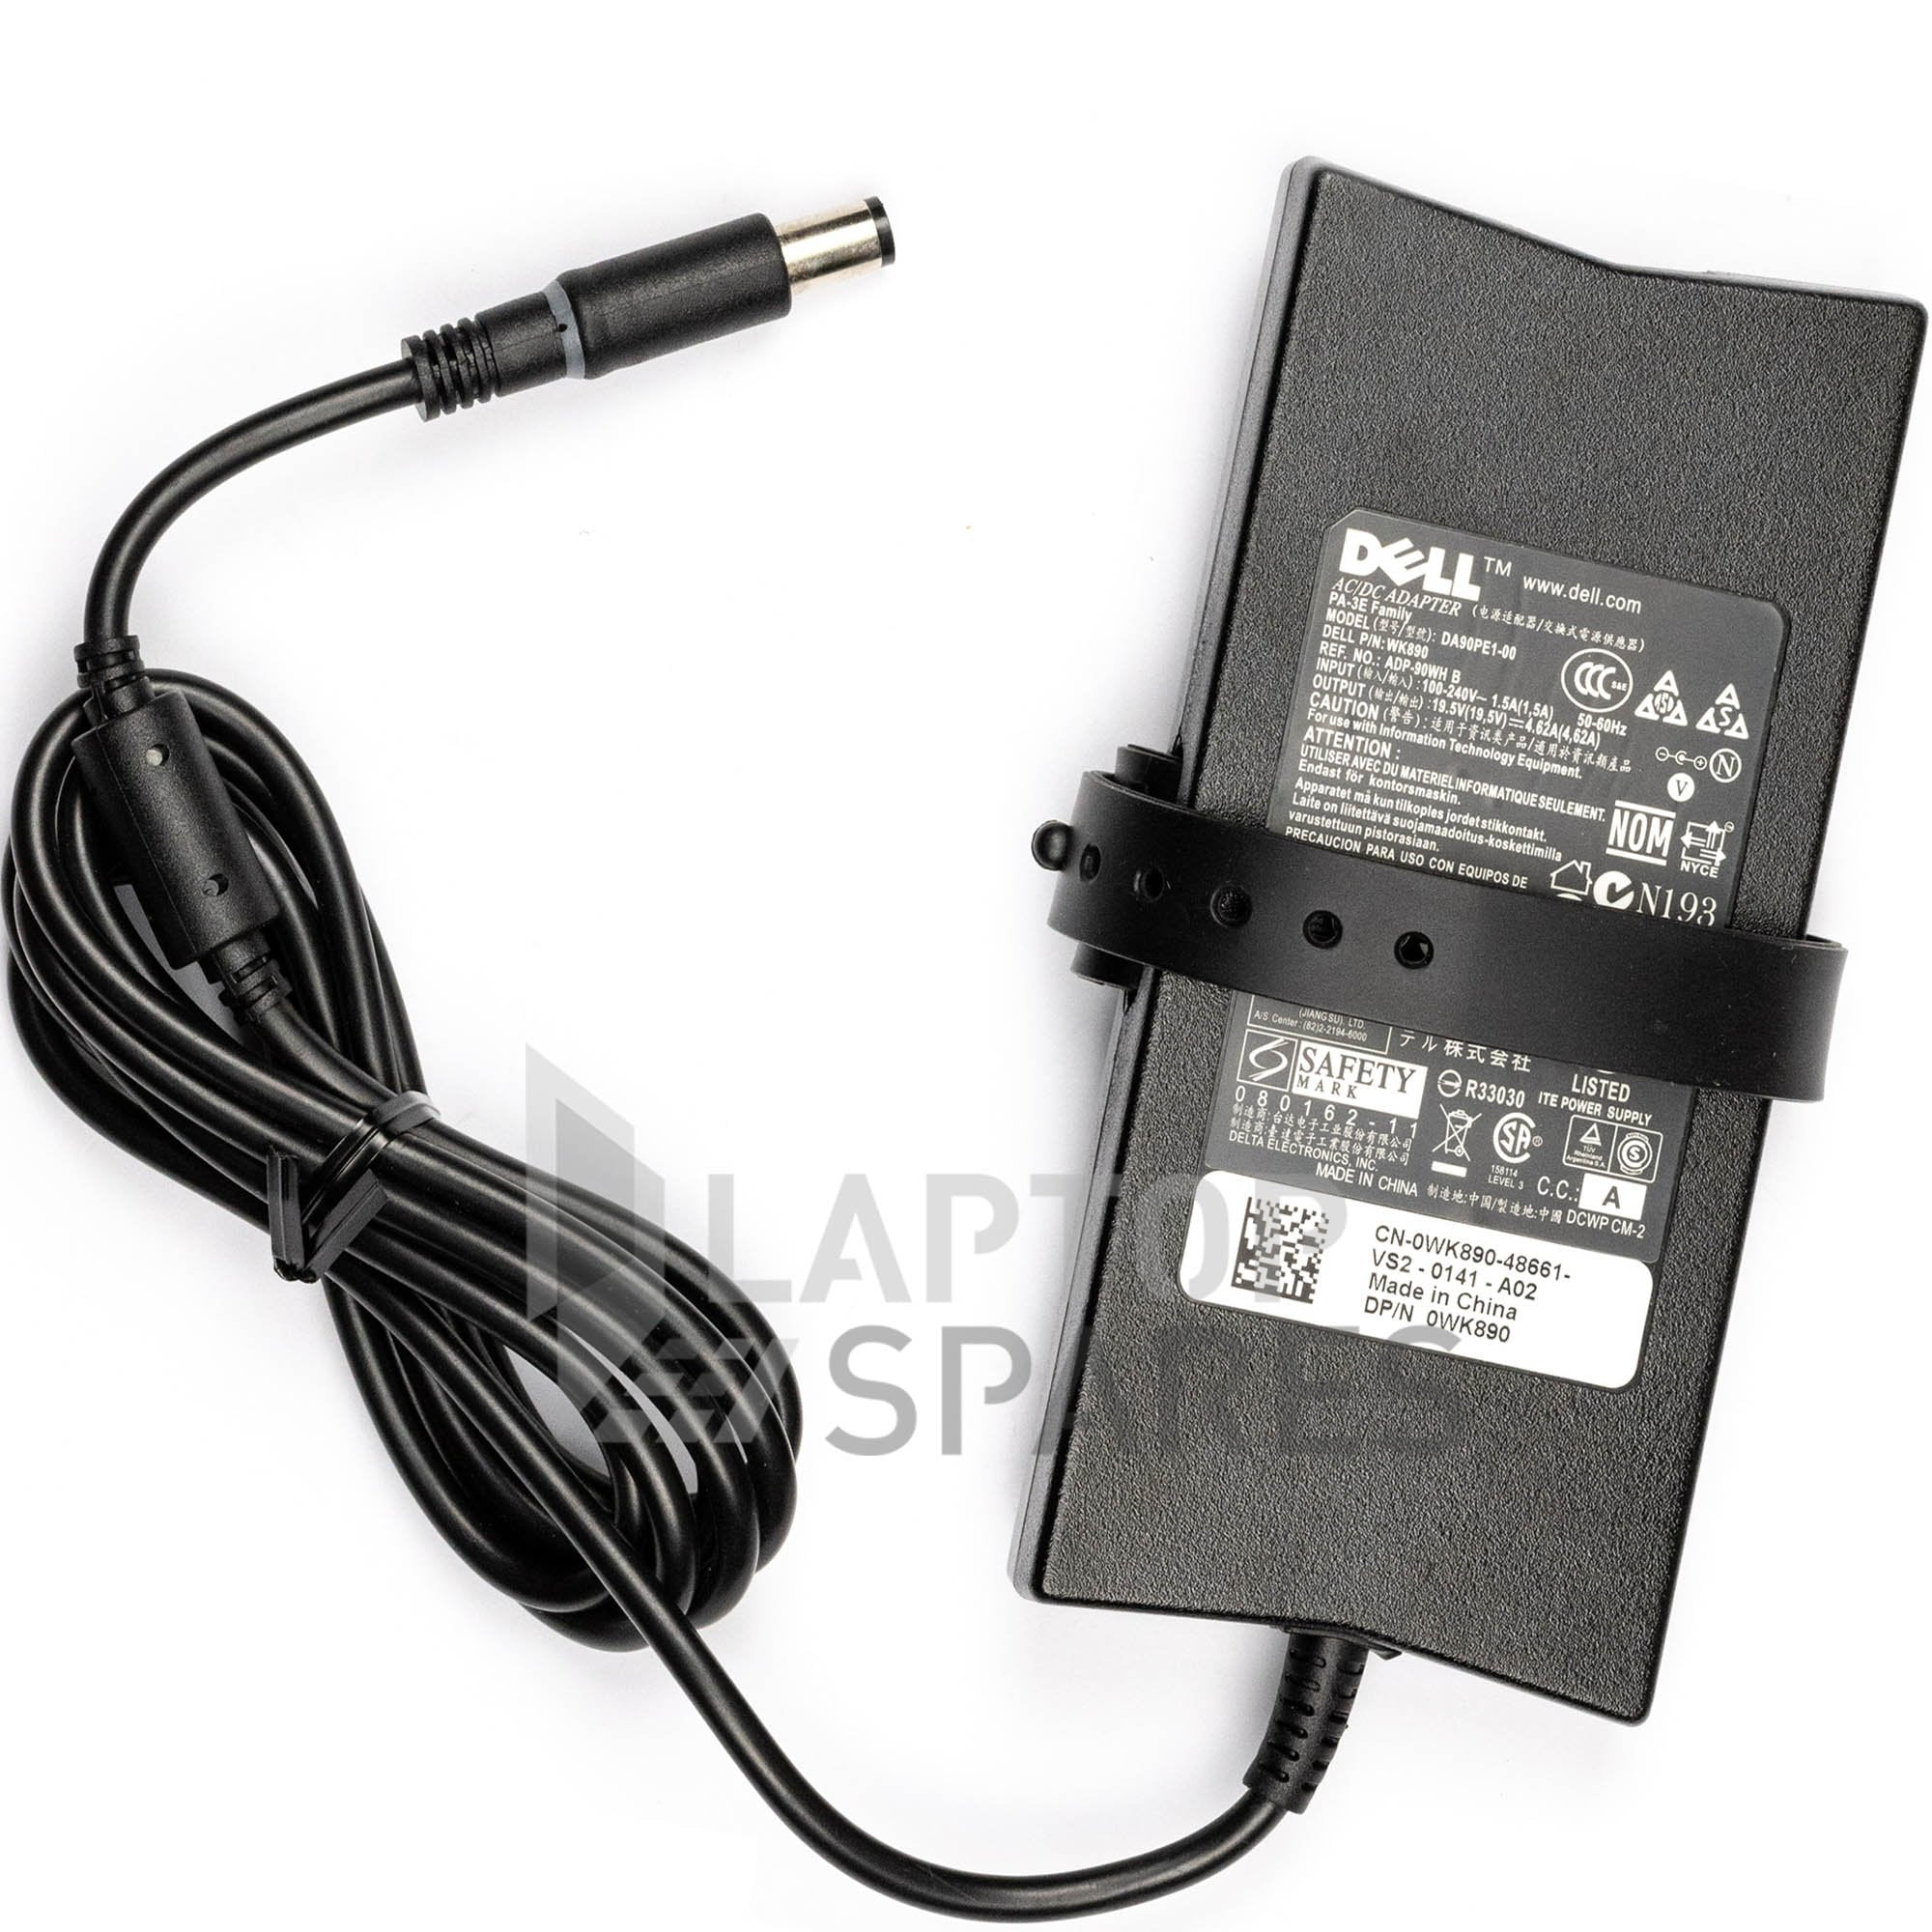 Dell Latitude E7440 E7450 E7470 Laptop Slim AC Adapter Charger